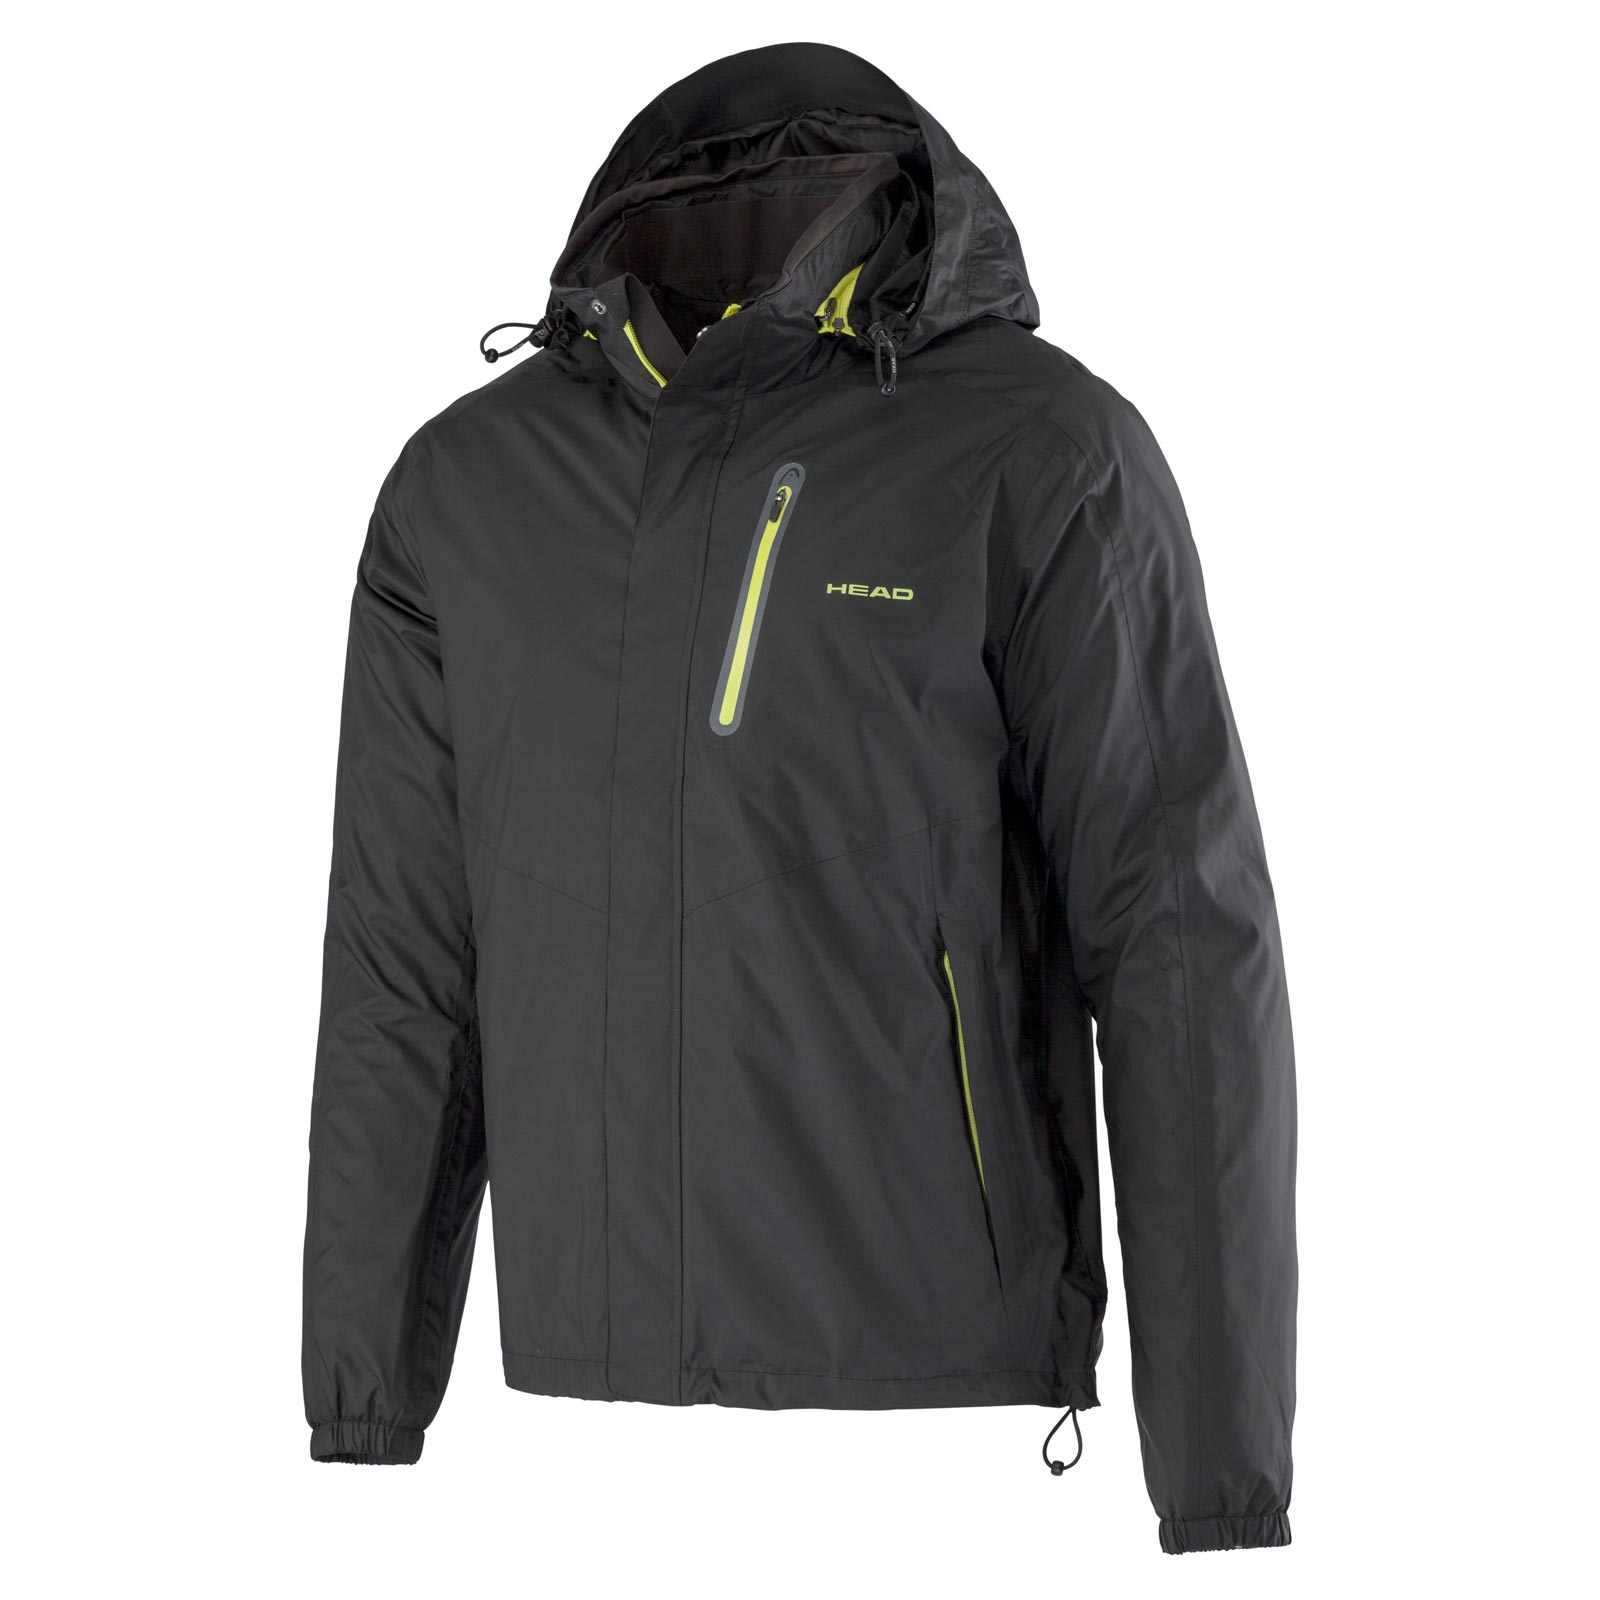 HEAD ALL SEASON COACH - RAIN JACKET Black L